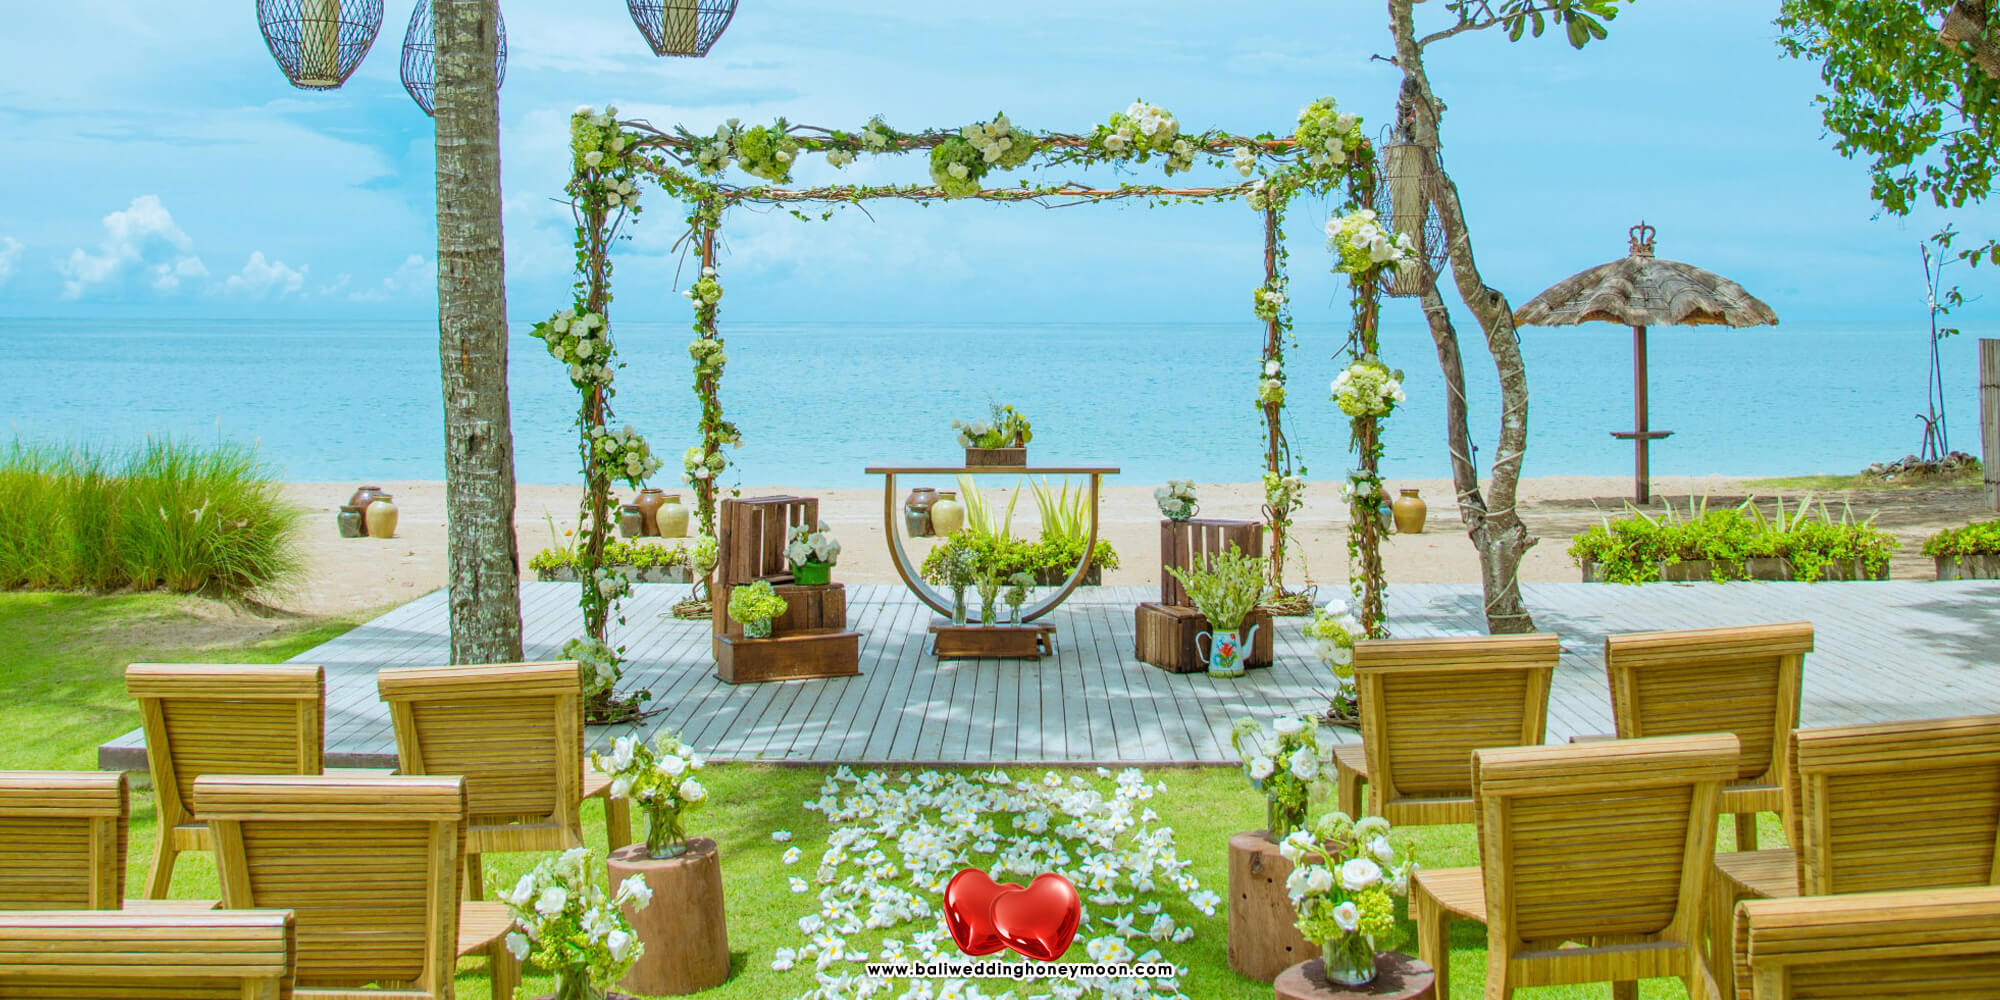 belmondjimbaranbali-weddingvenuebali-uniquebaliwedding-baliweddinghoneymoon-baliweddingorganizer-baliweddingplanner-baliweddingpackage7